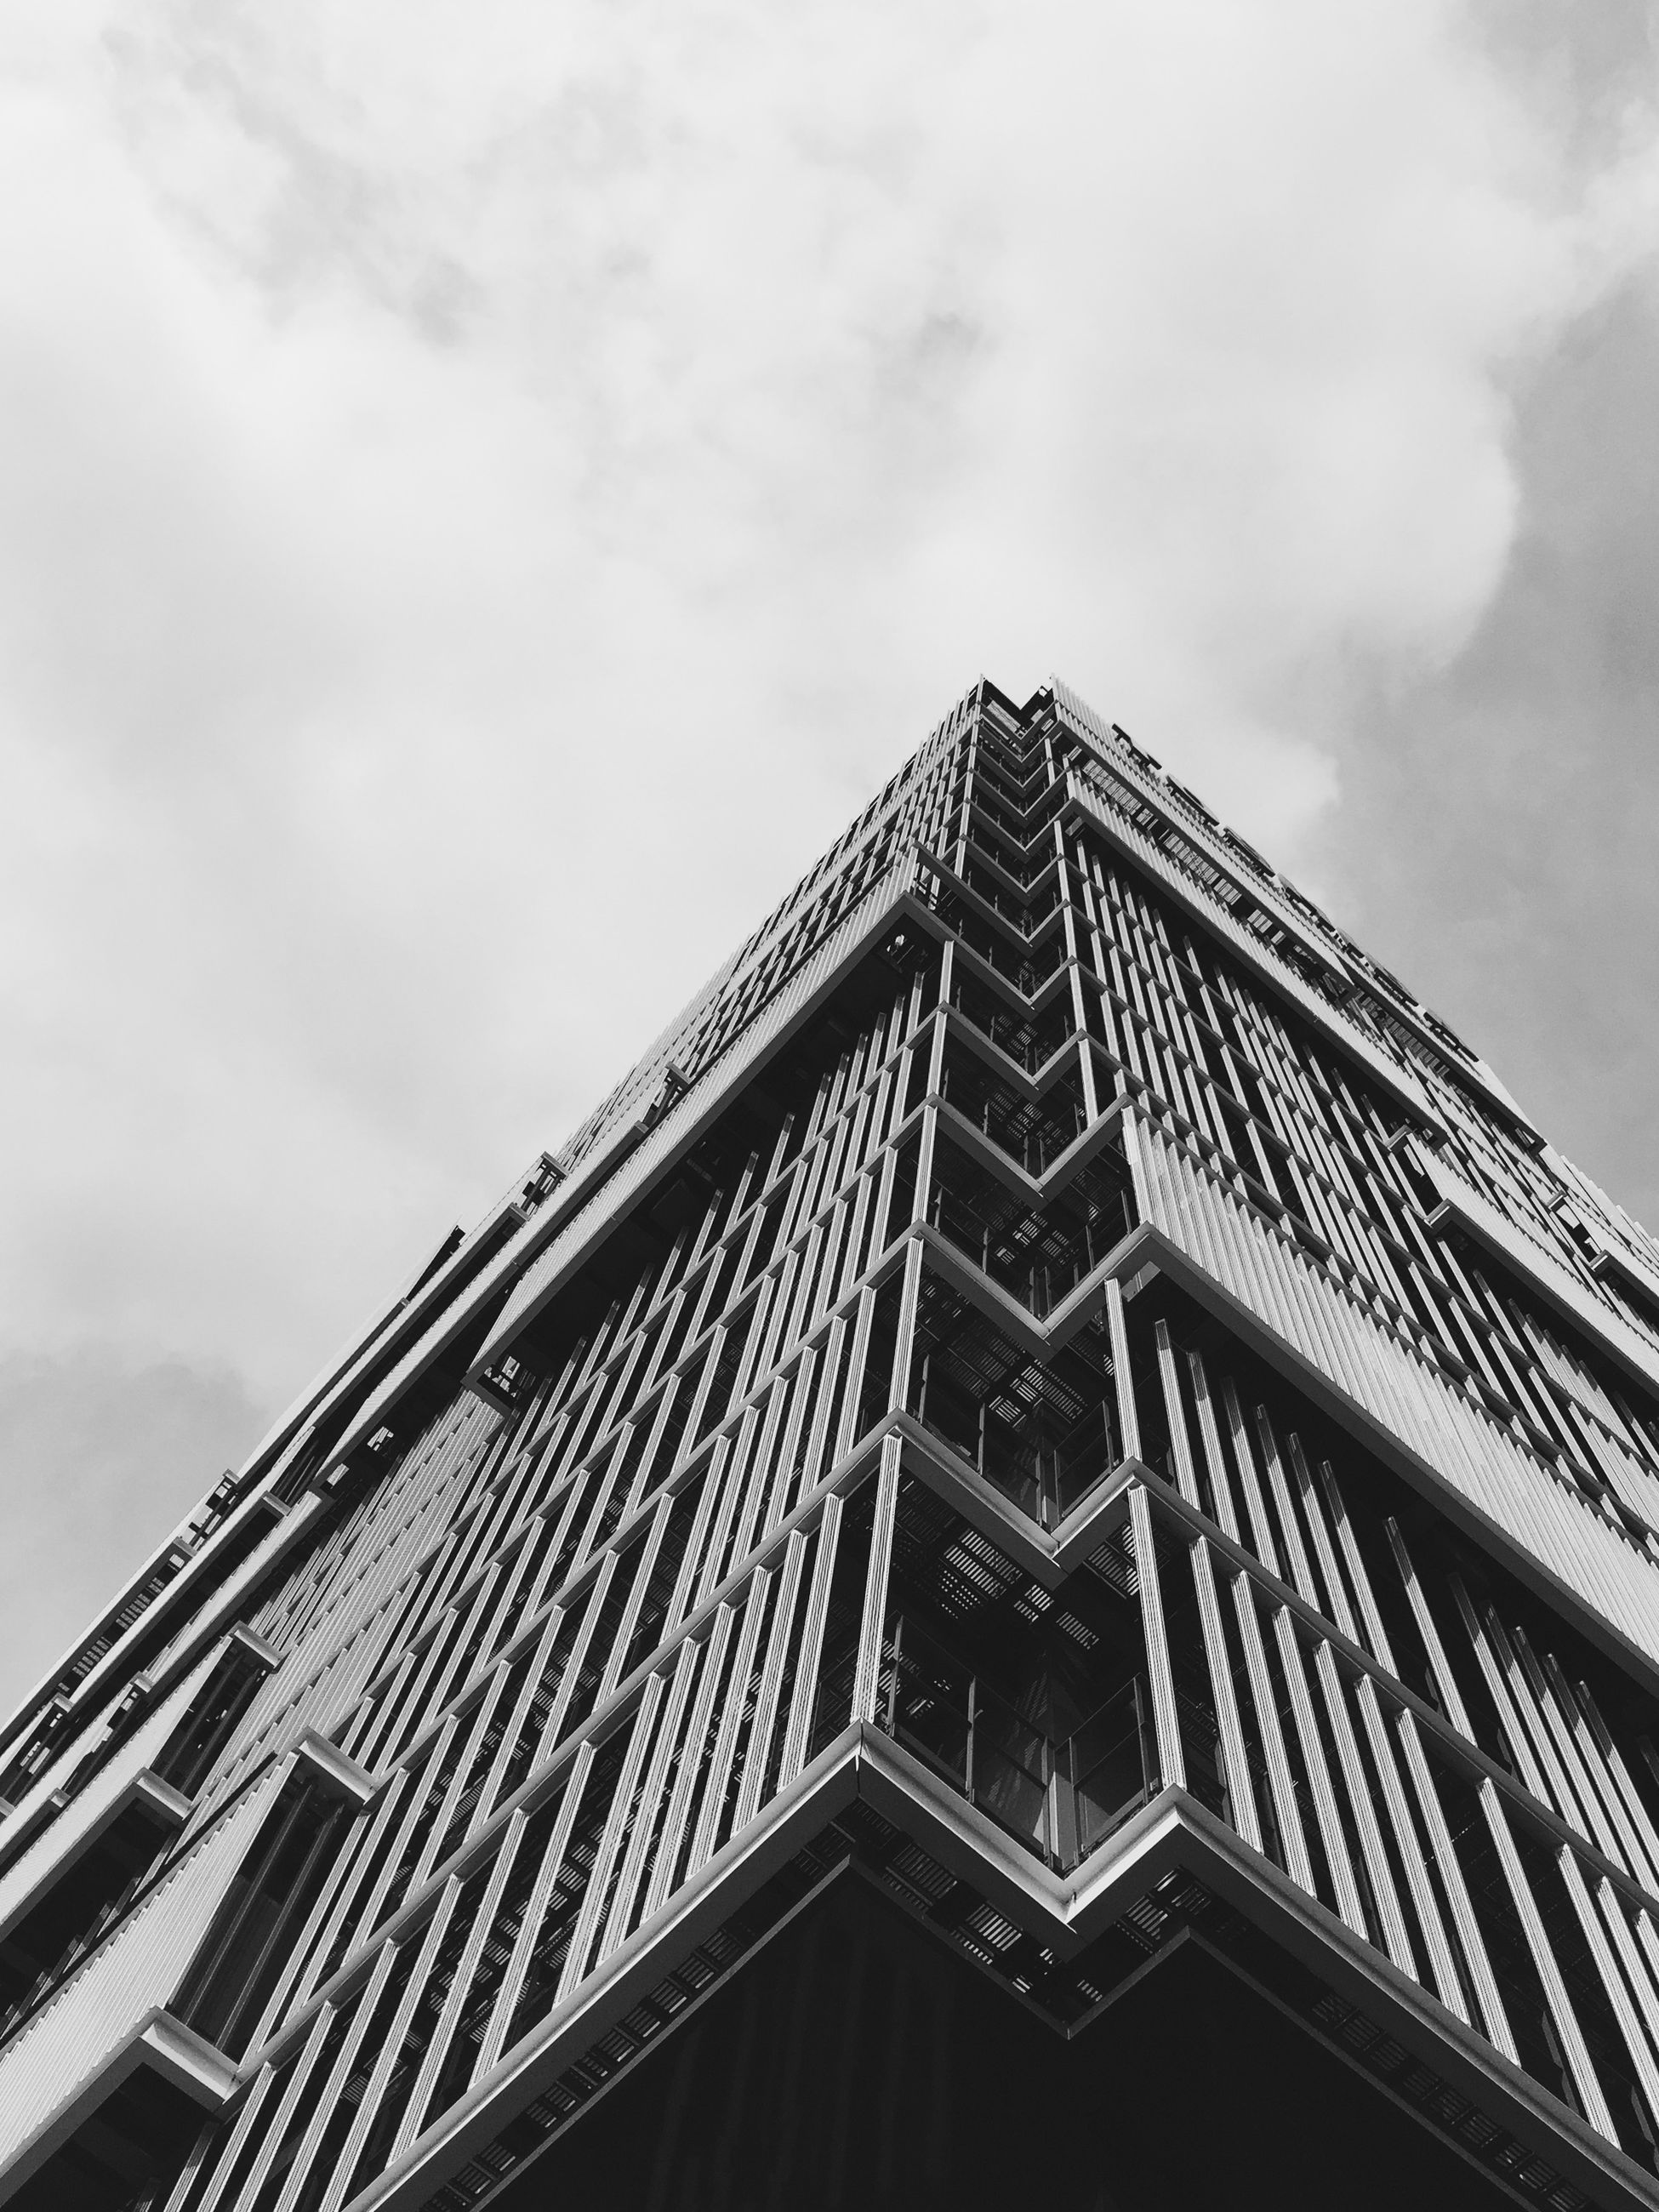 architecture, low angle view, built structure, building exterior, sky, cloud - sky, architectural feature, city, tower, tall - high, pattern, day, modern, cloud, building, outdoors, cloudy, no people, window, office building